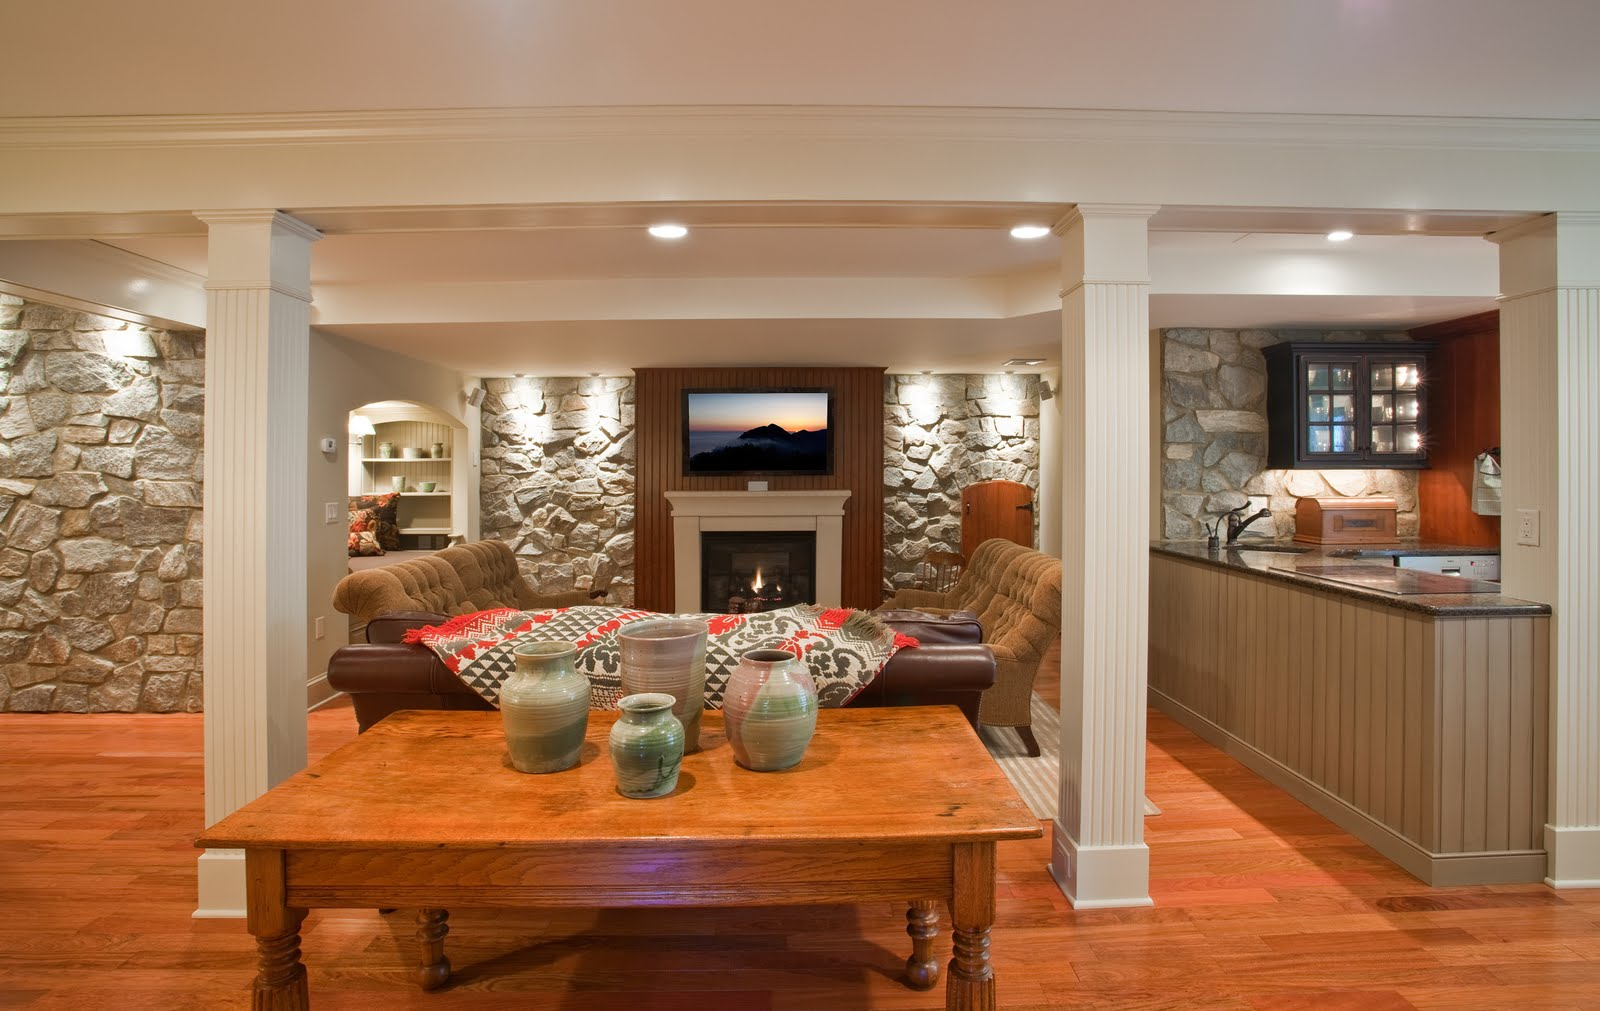 Gracious Interiors: Basement Becomes Lower-Level Suite